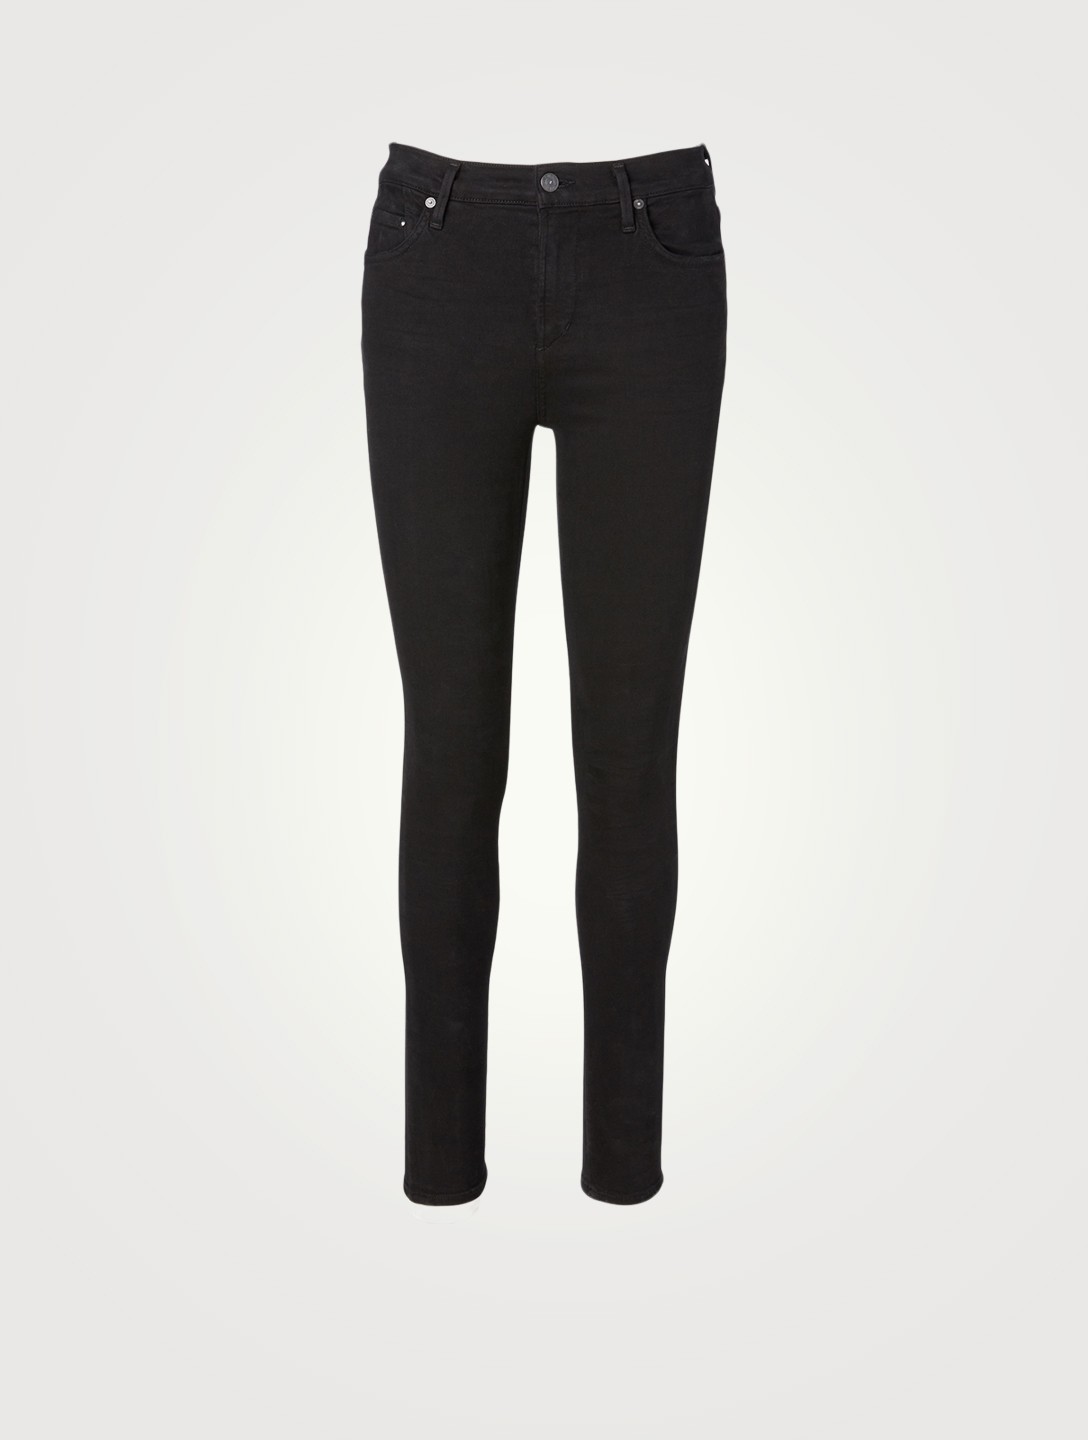 CITIZENS OF HUMANITY Rocket Skinny Jeans Women's Black